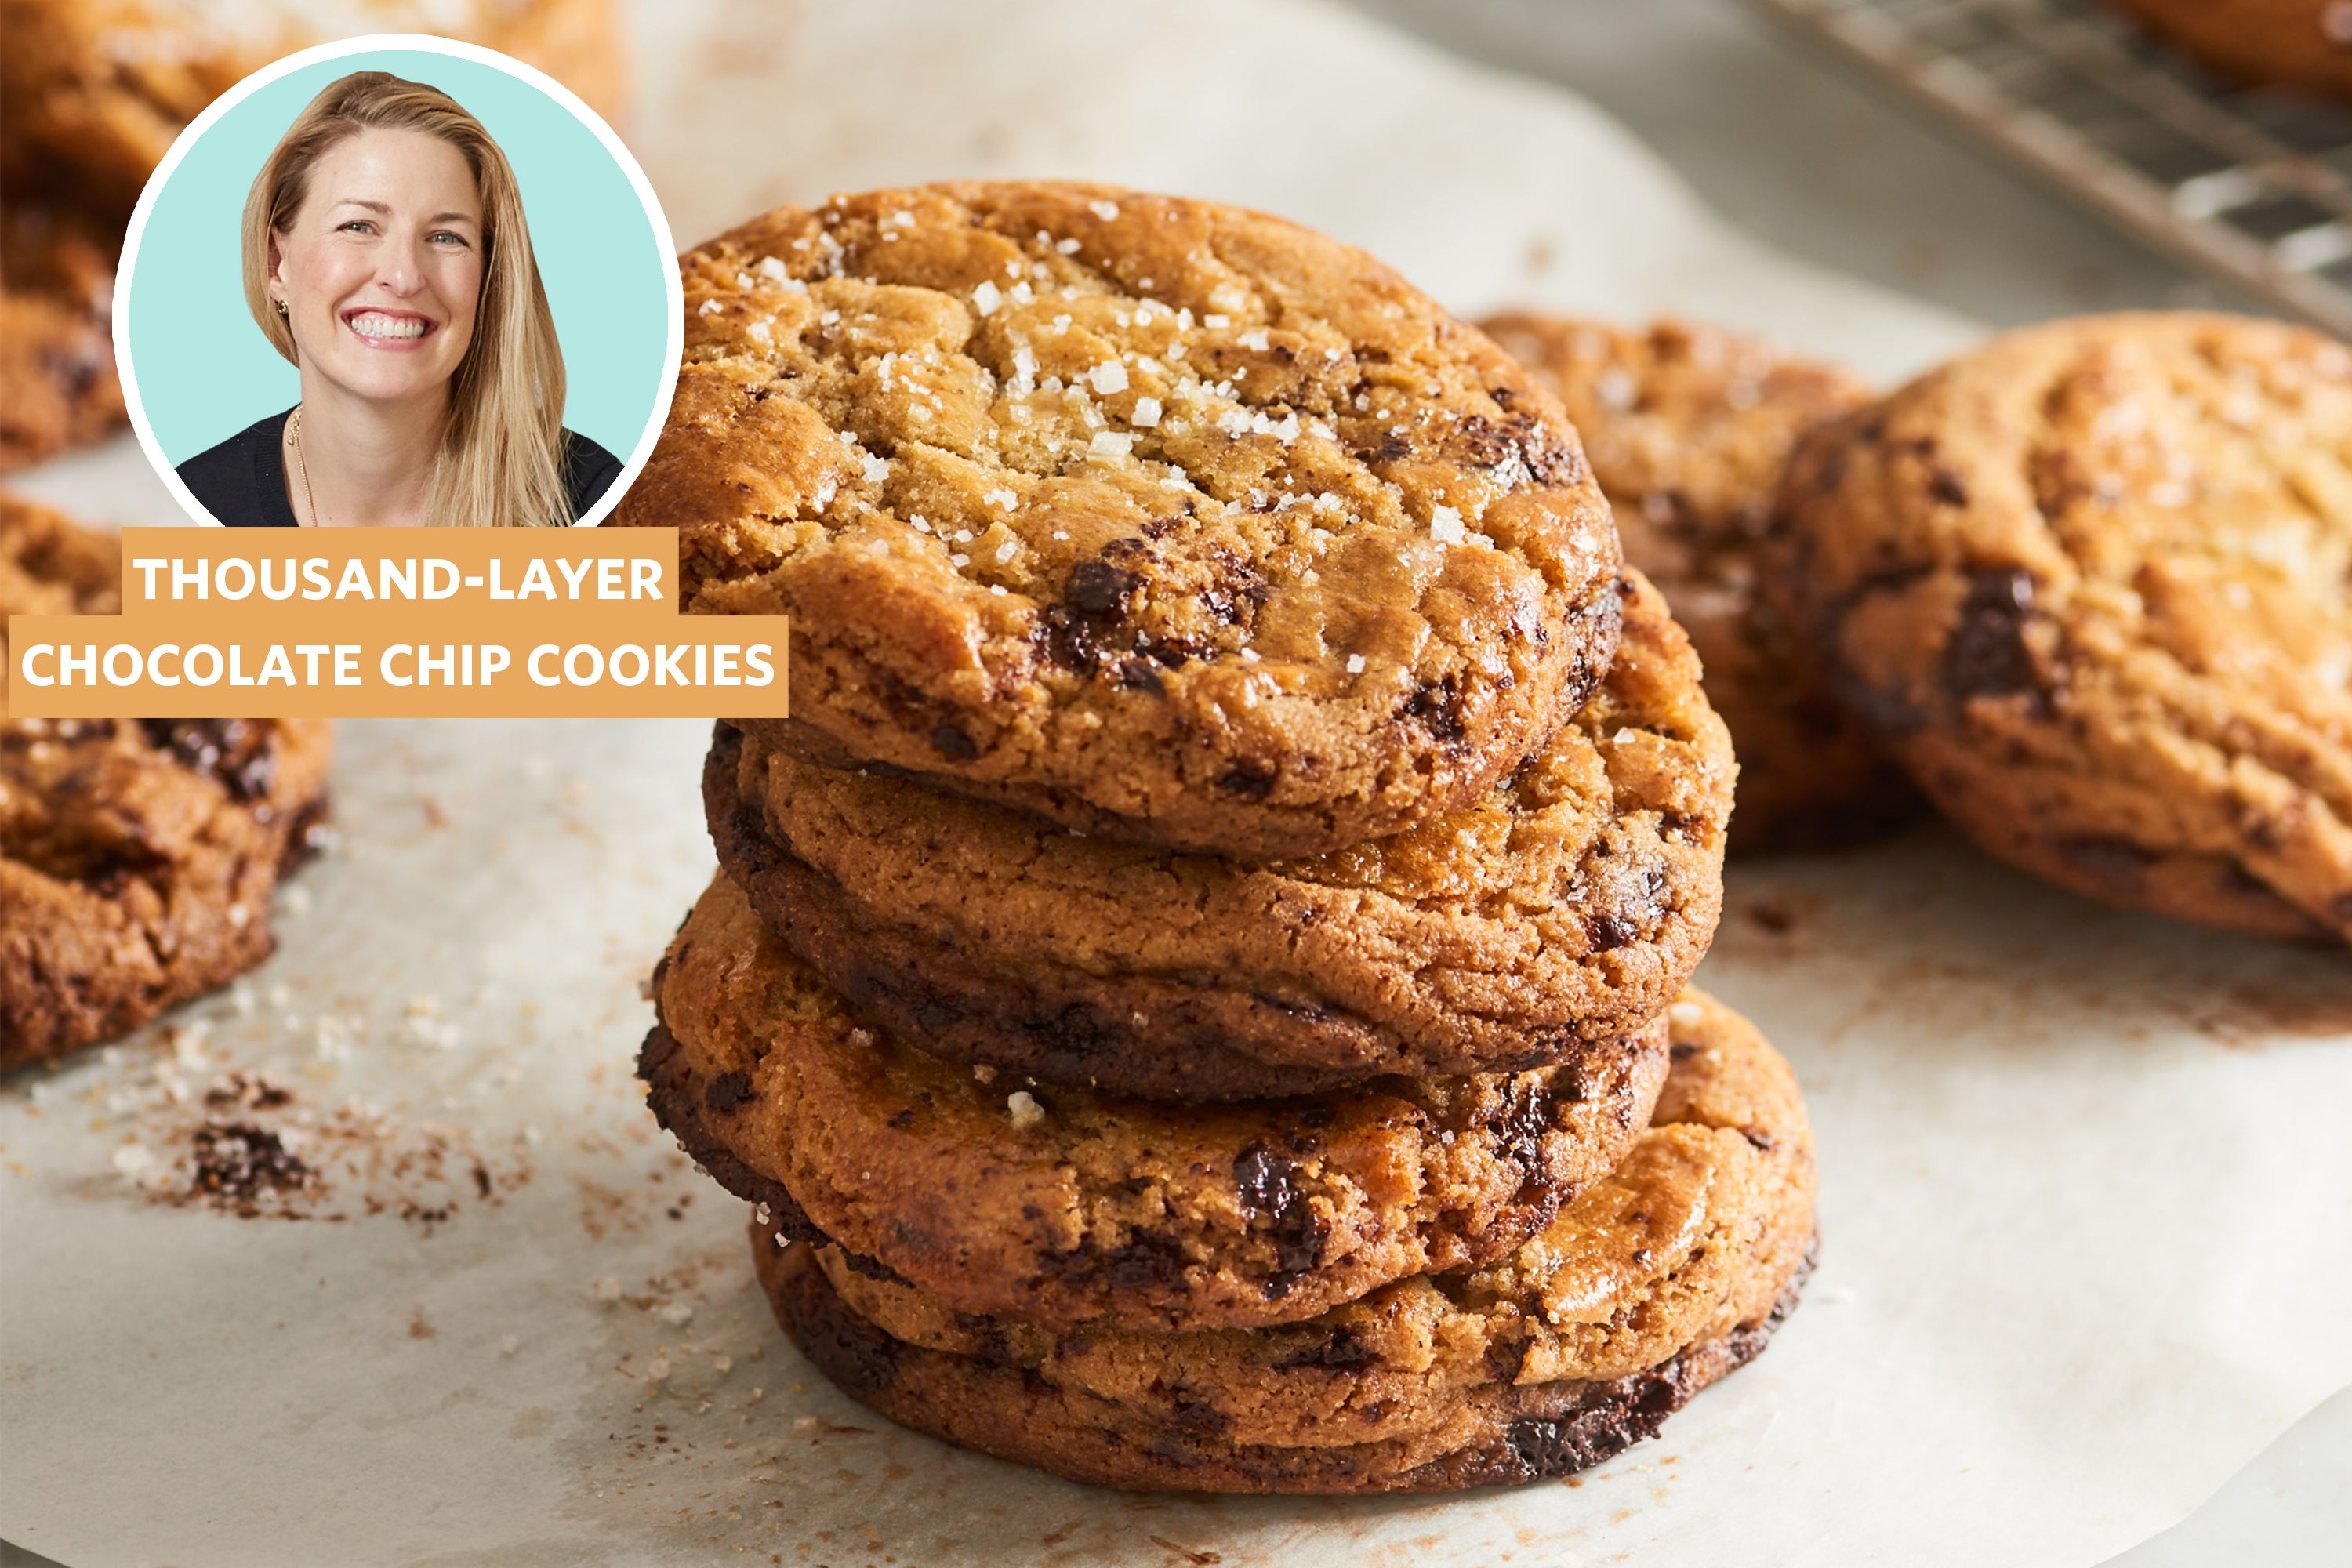 Here's What to Know About Thousand-Layer Chocolate Chip Cookies